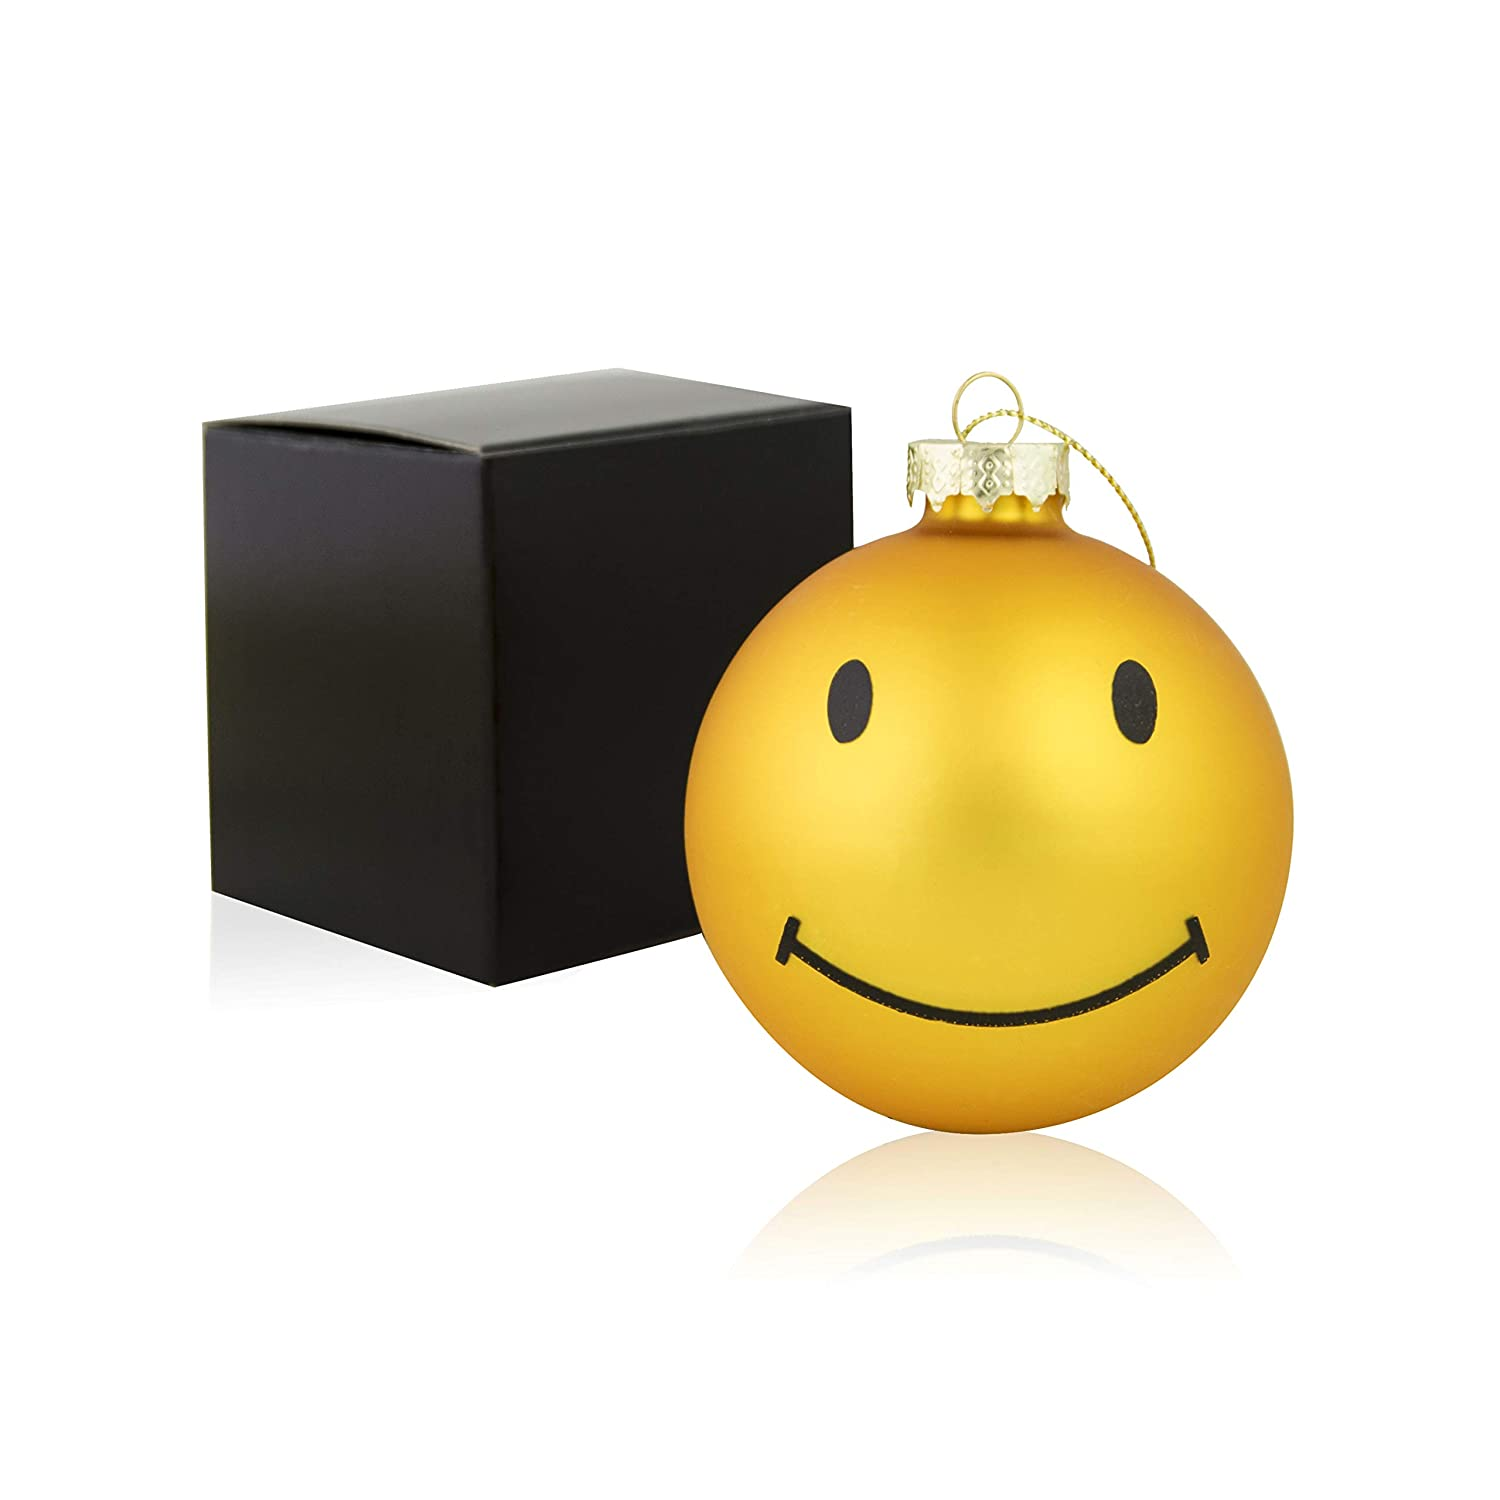 Silly Me Products Large Christmas Glass Ball Ornament - Yellow Gold Smiley Face Xmas Tree Holiday Decoration for Home, Patio & Outdoors - Emoji Party Favors – A Novel Xmas Gift - 3 Inches Round